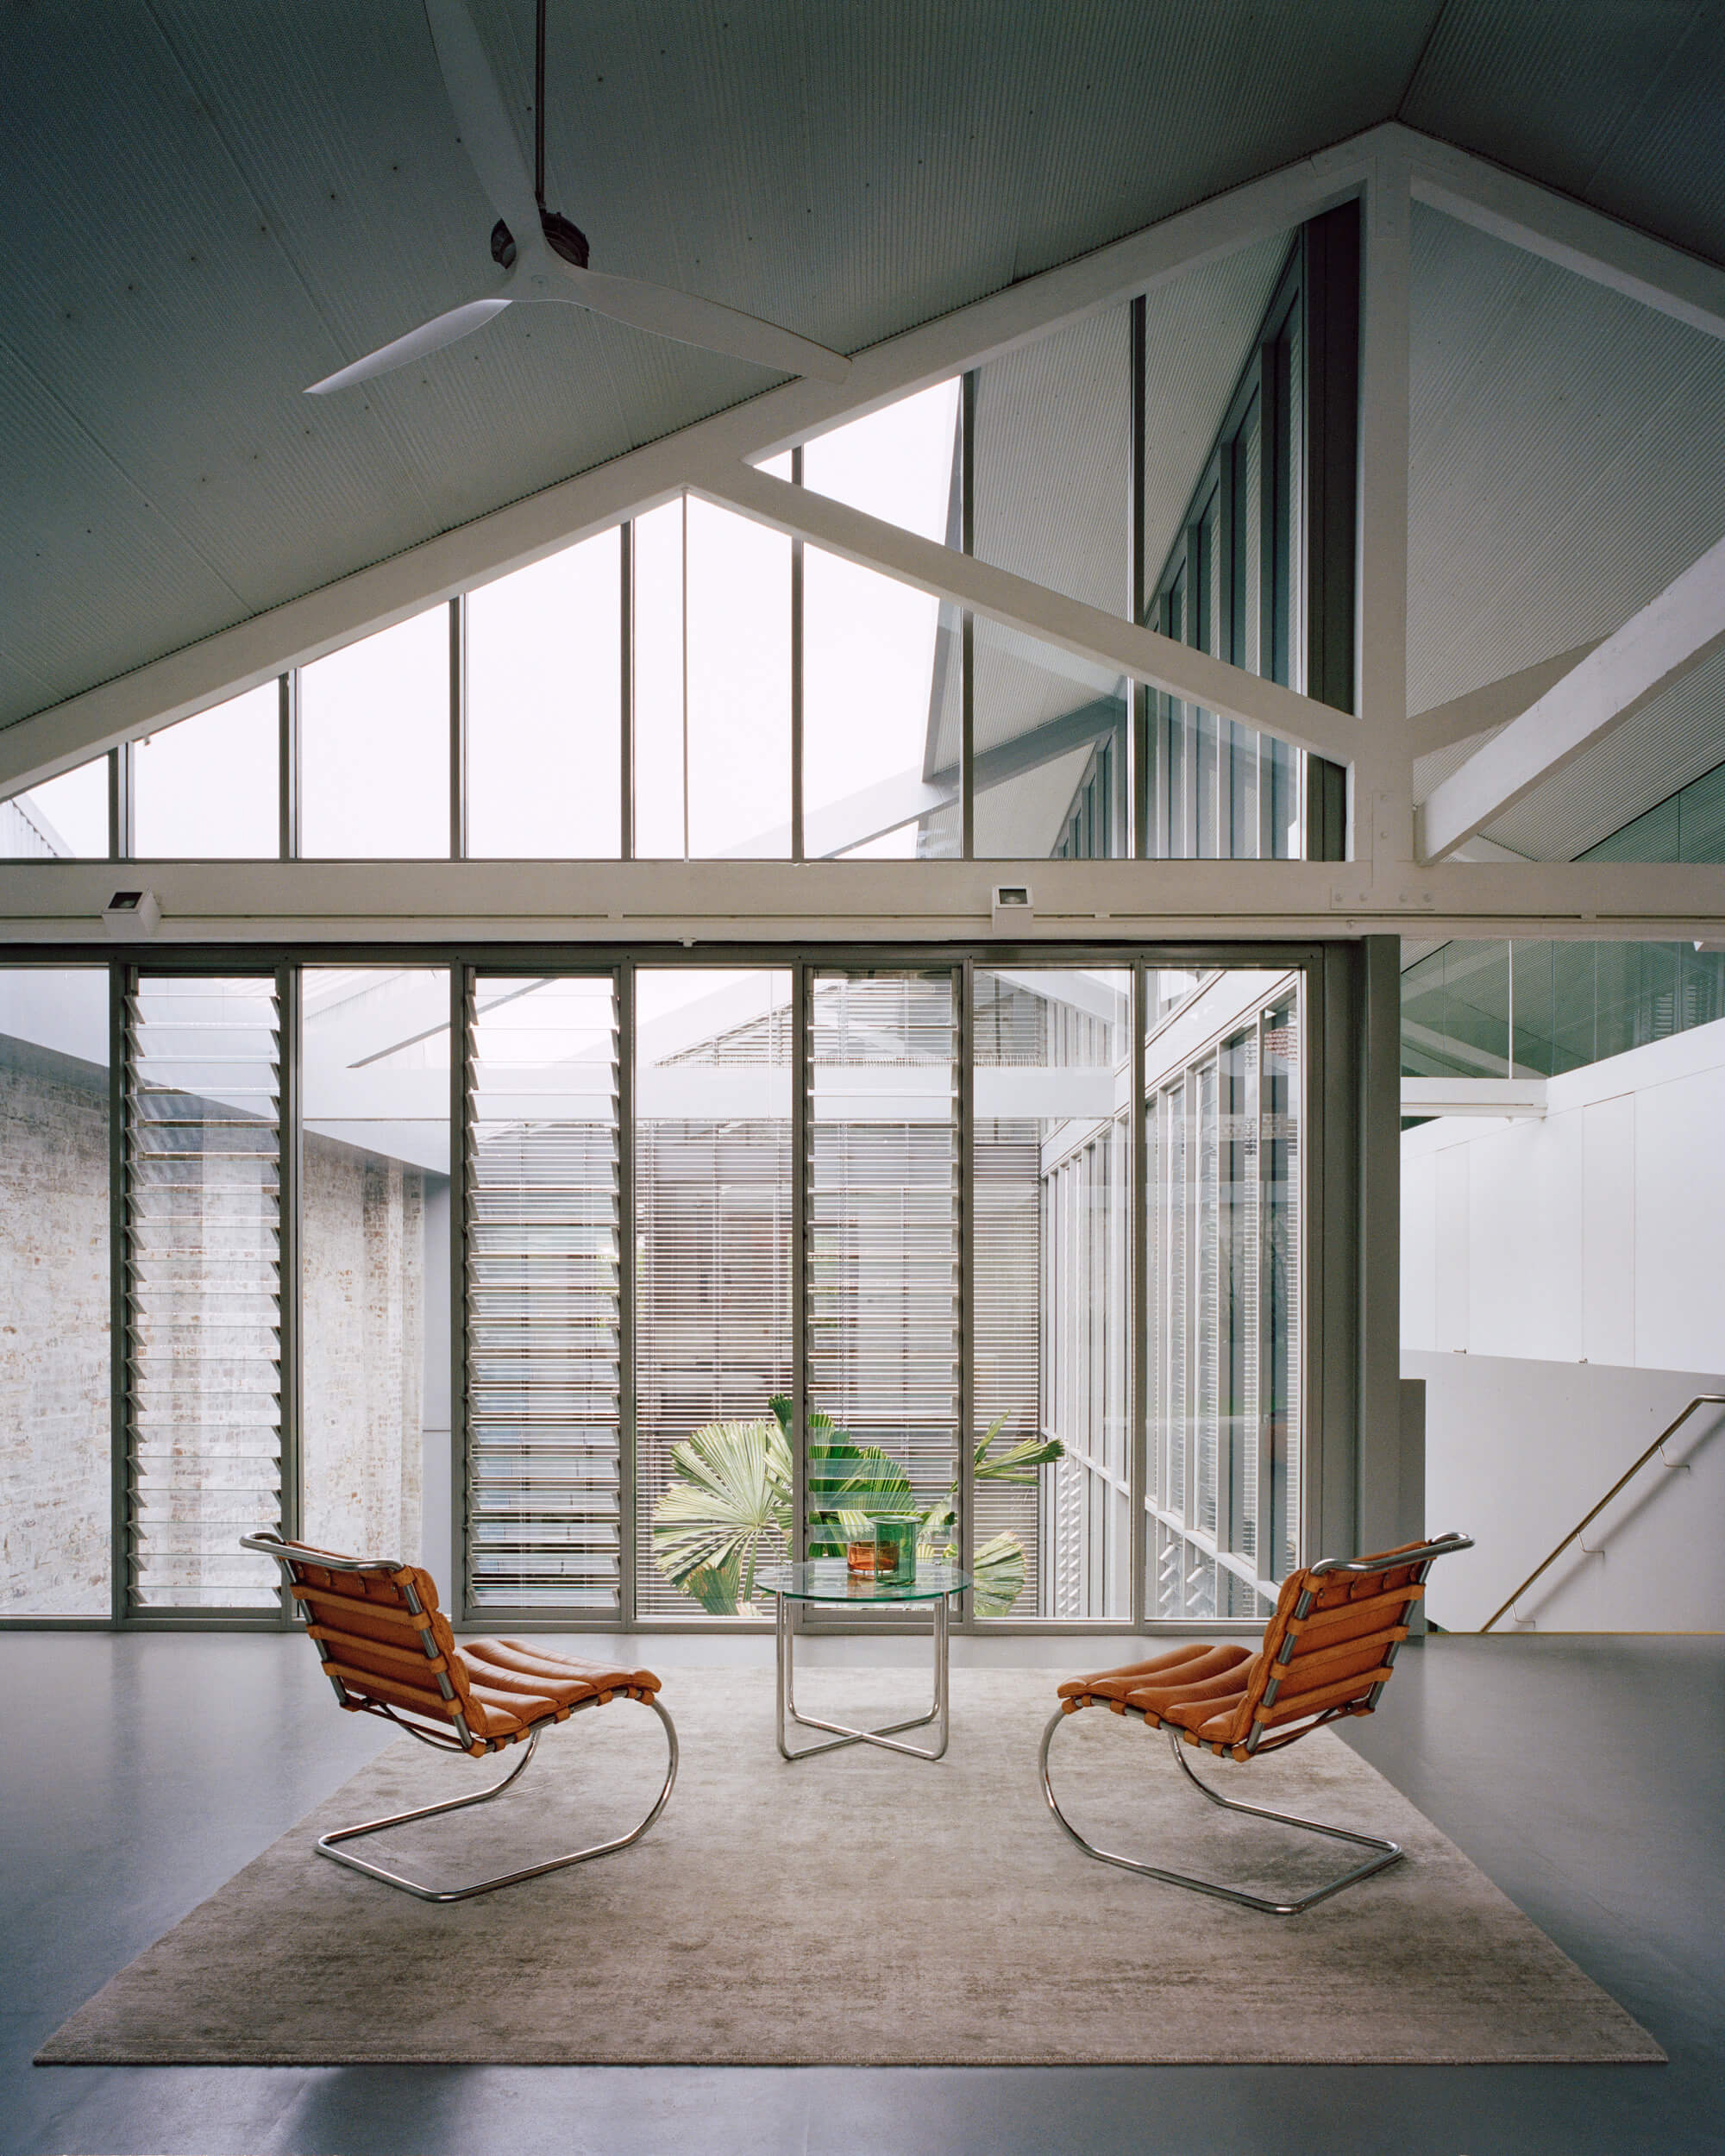 Redfern Warehouse by Ian Moore Architects